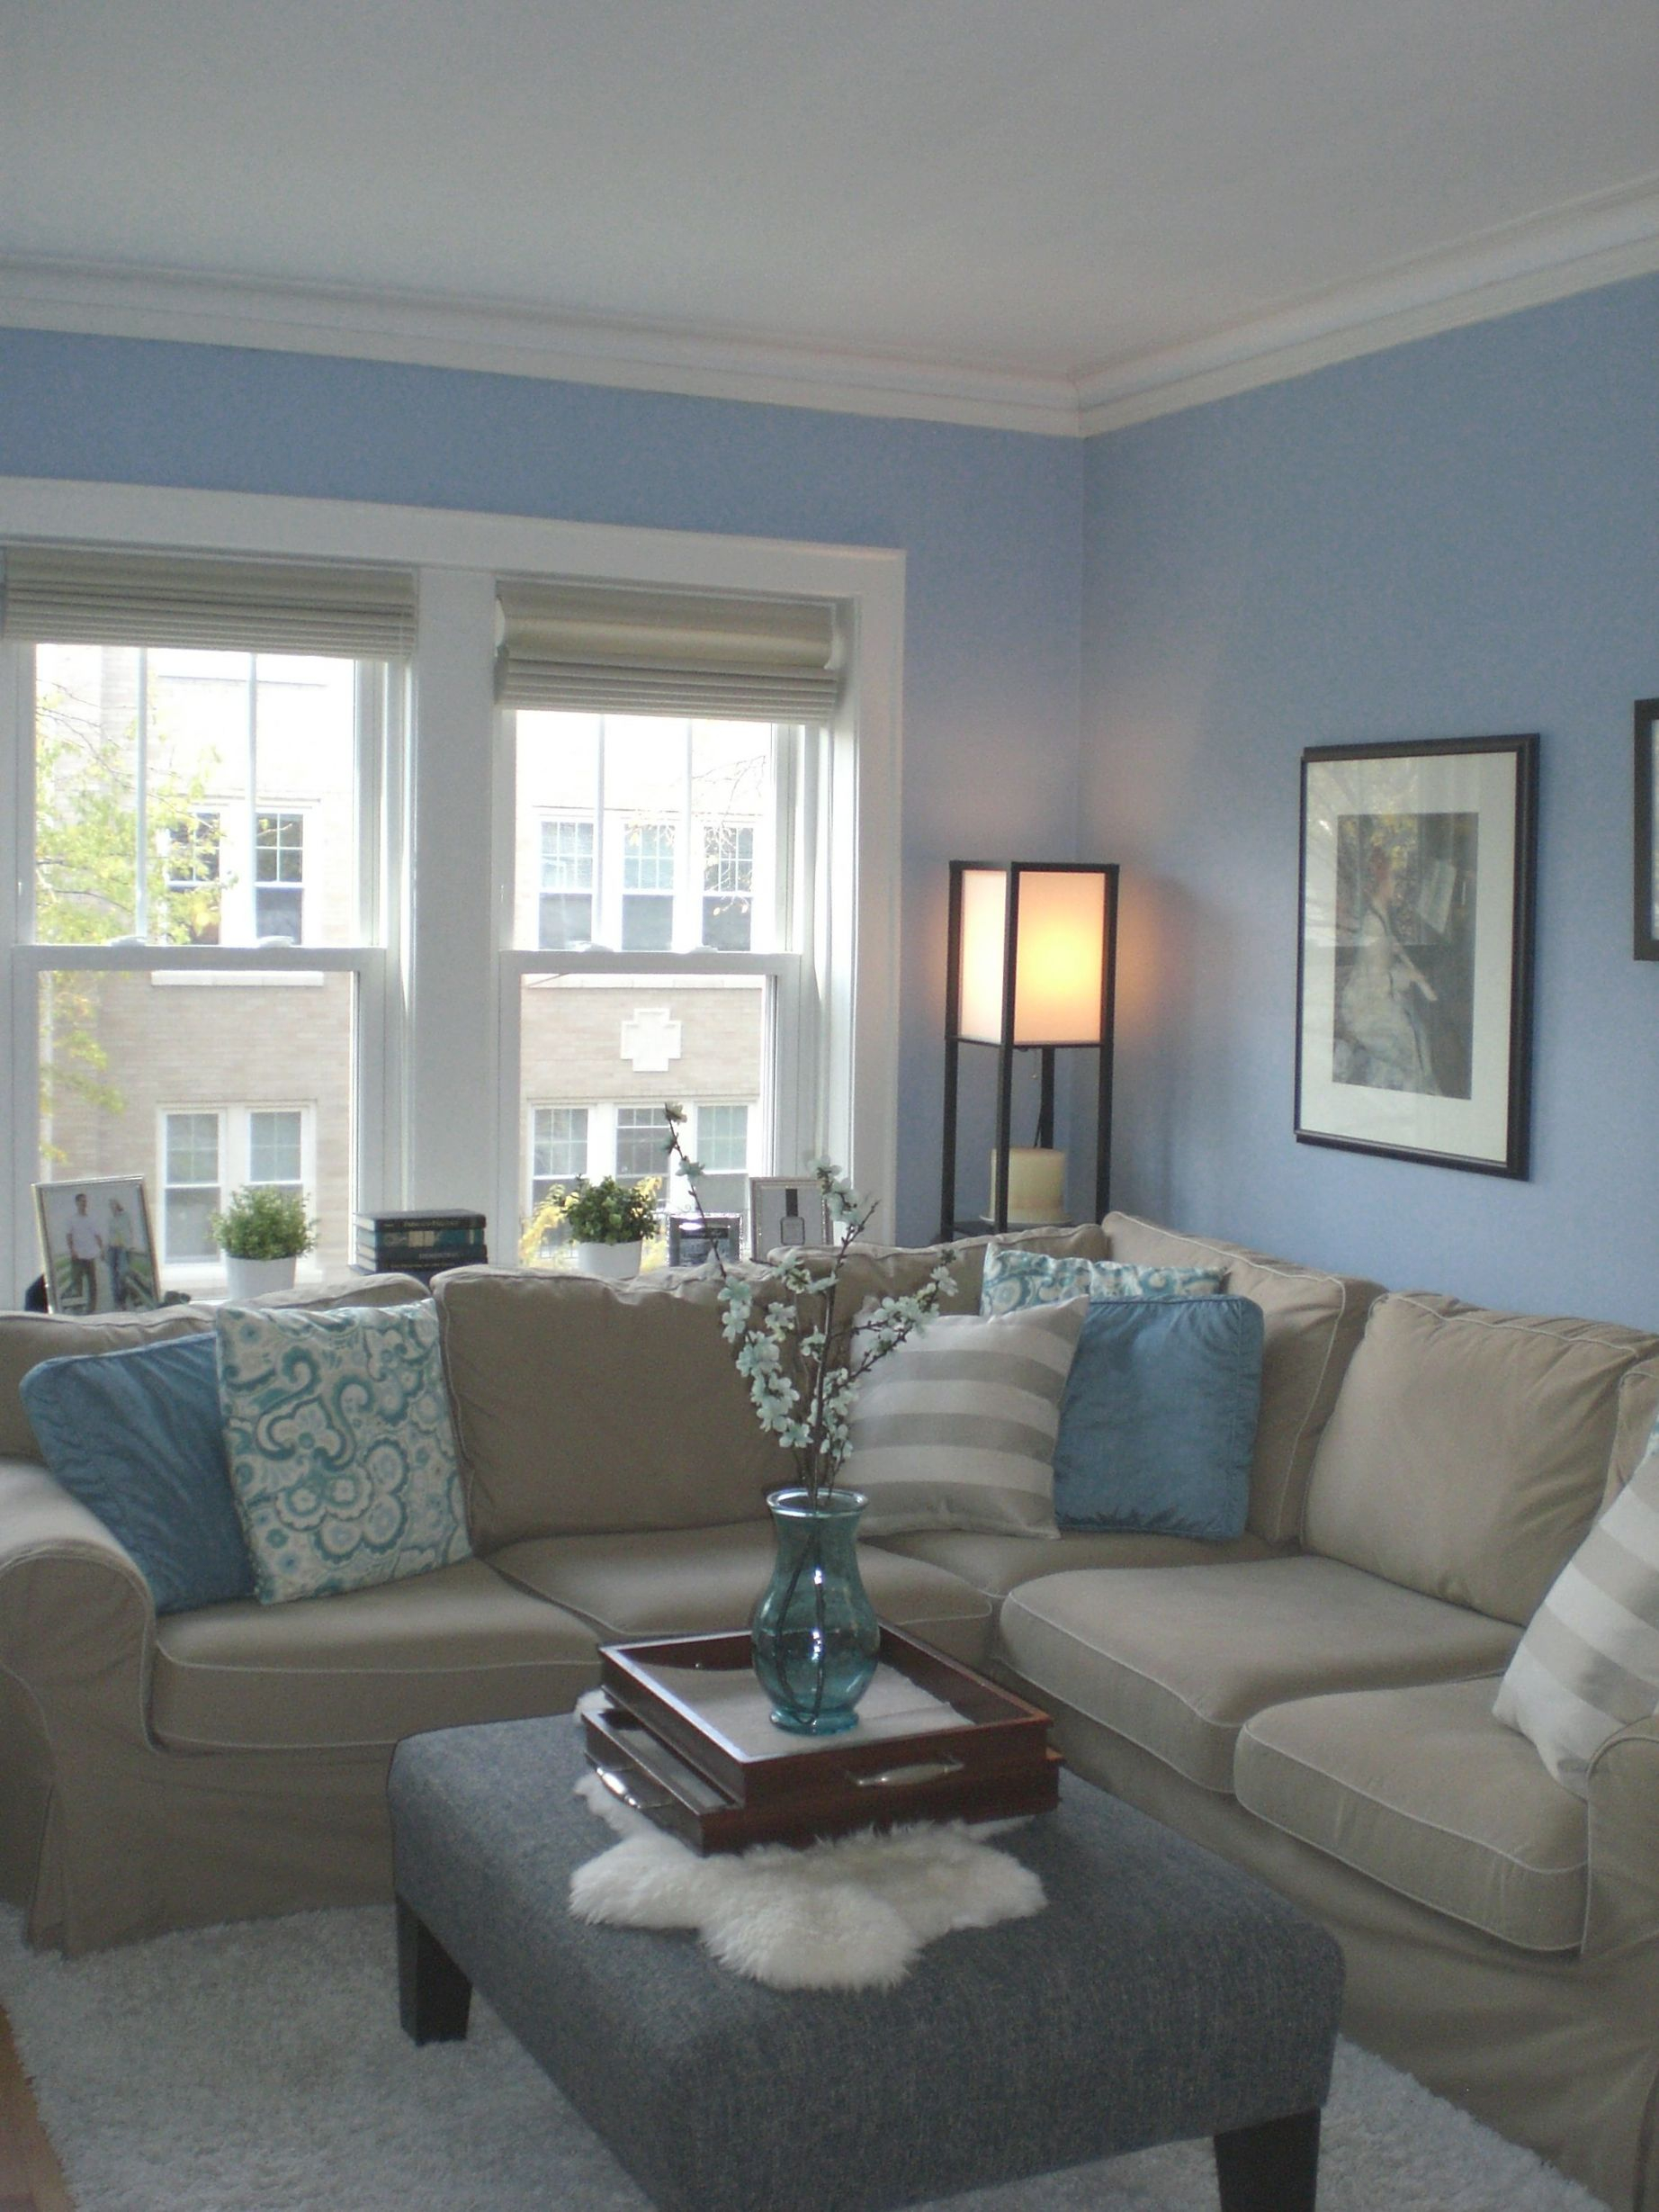 Tan Couch, Blue And Green Theme- Trying To Find Something To throughout Blue And Tan Living Room